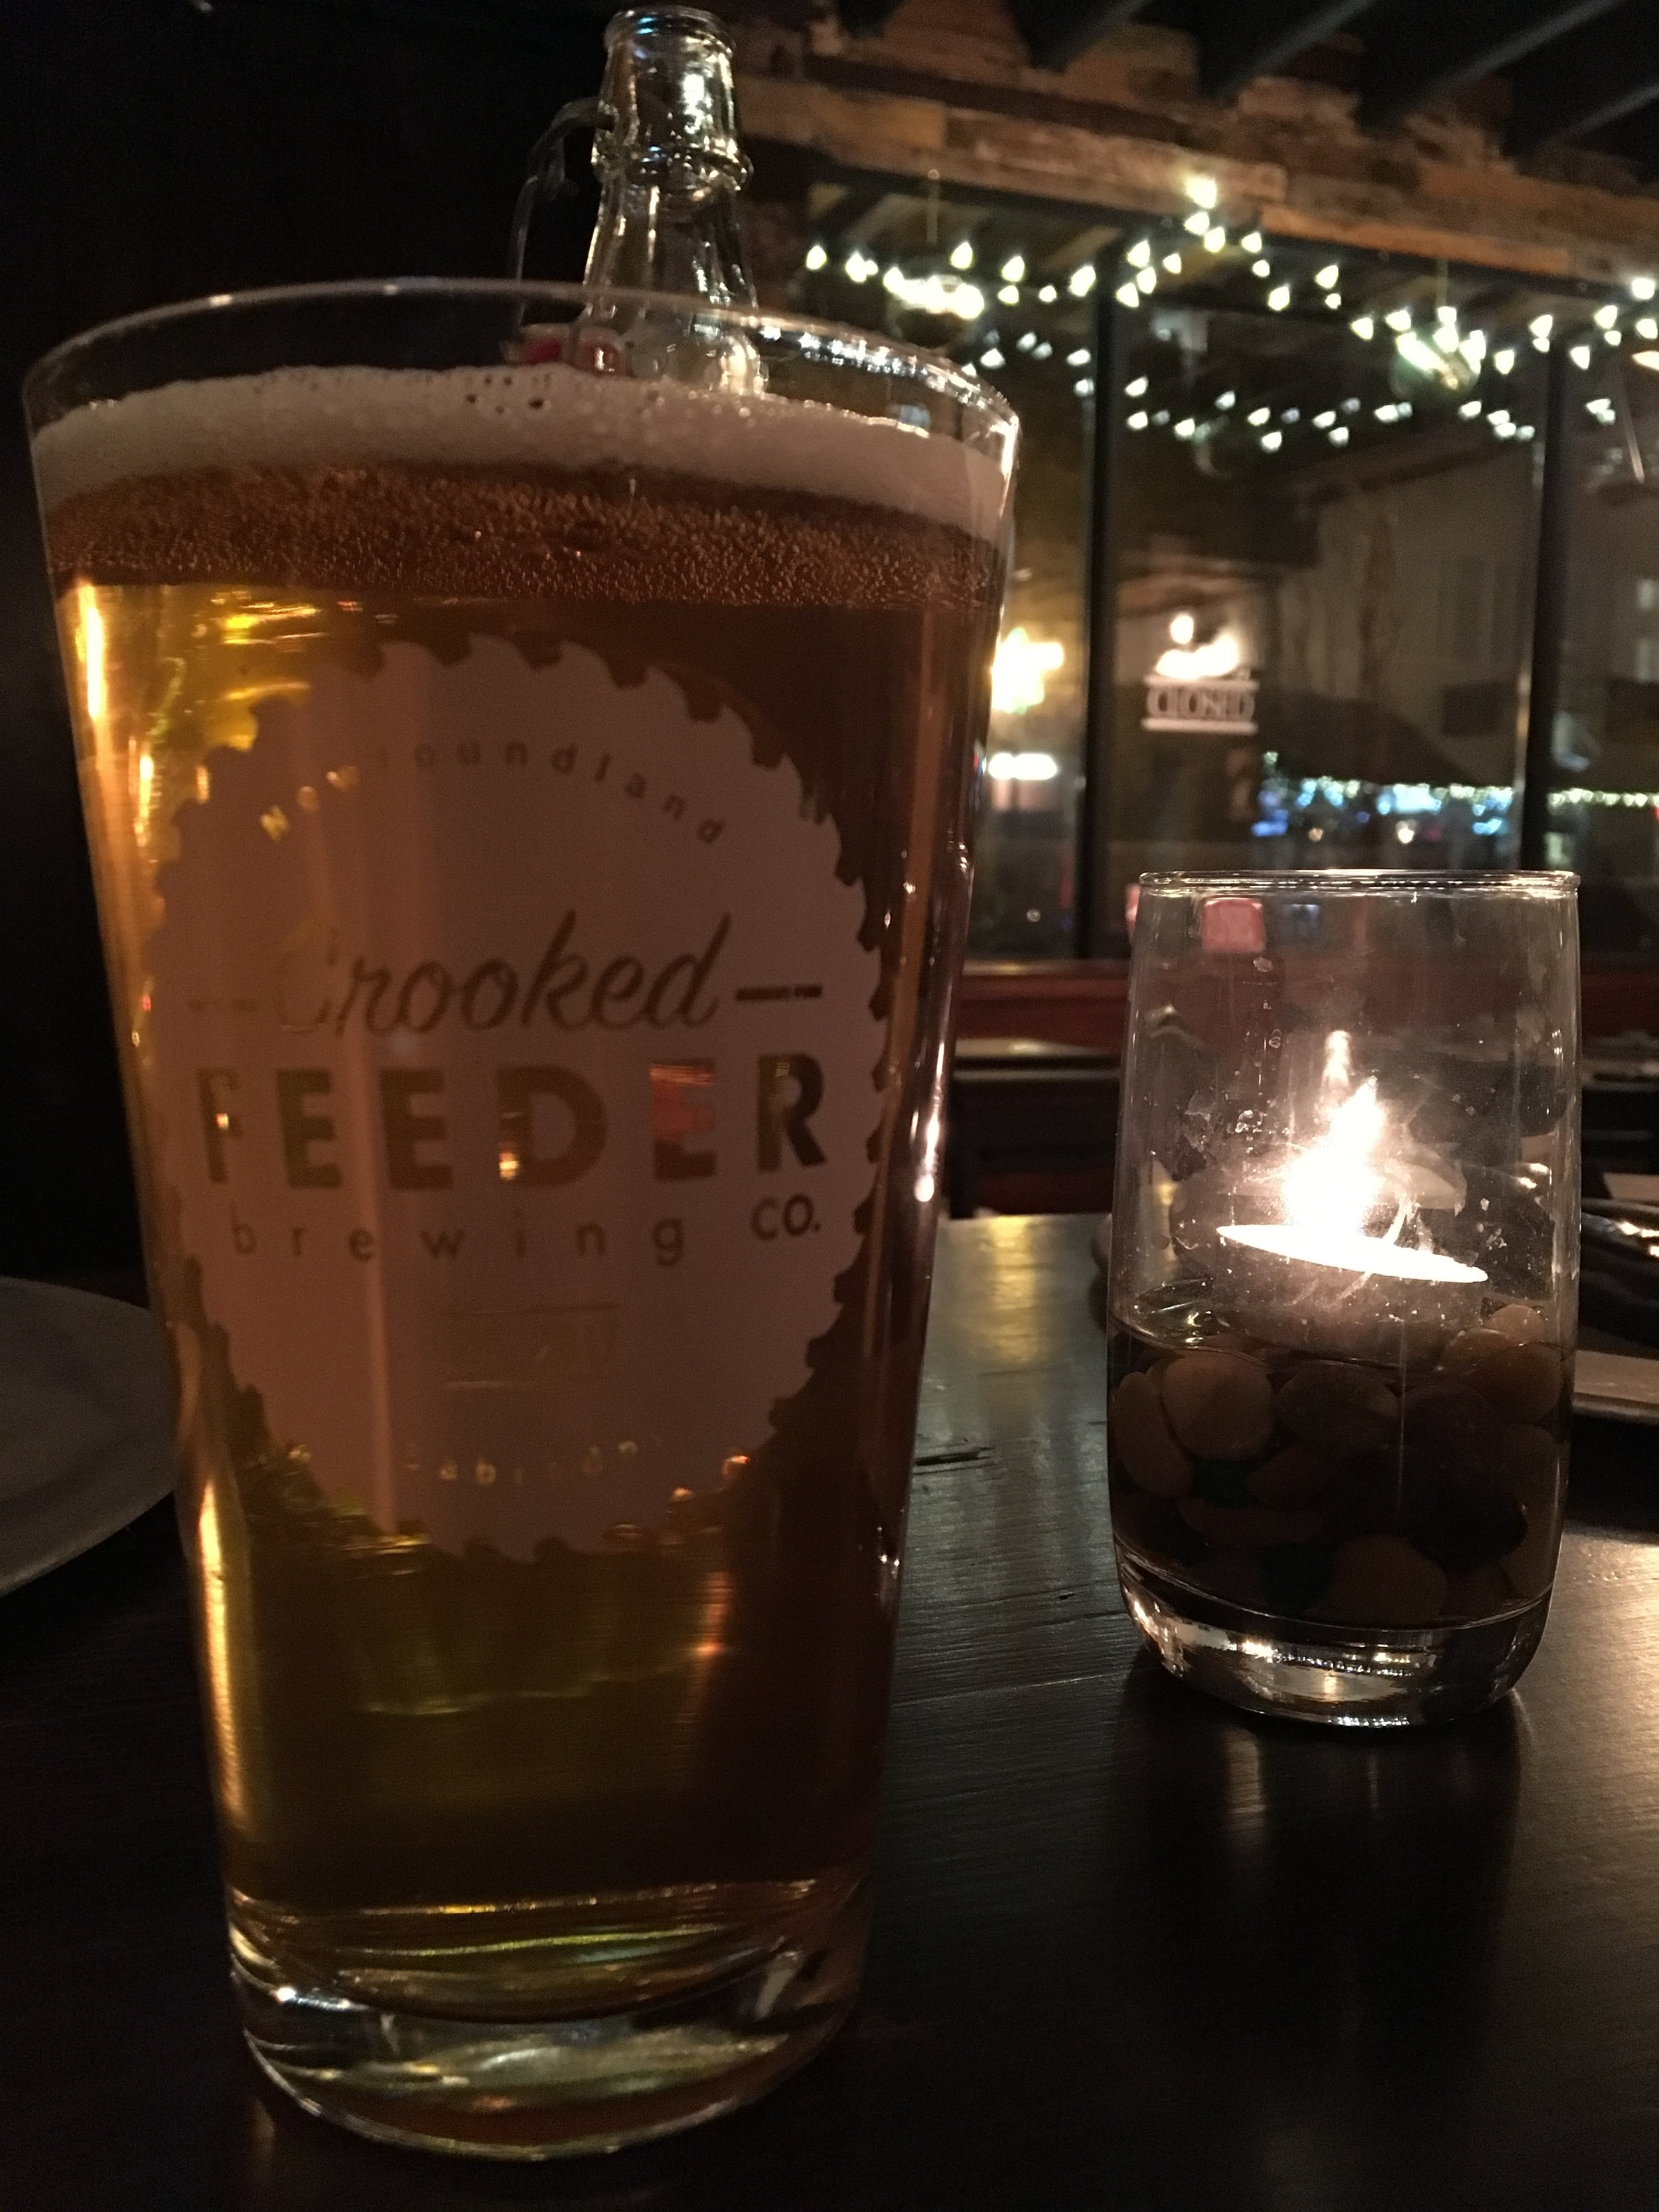 Crooked Feeder Pale Wheat at Green Door.